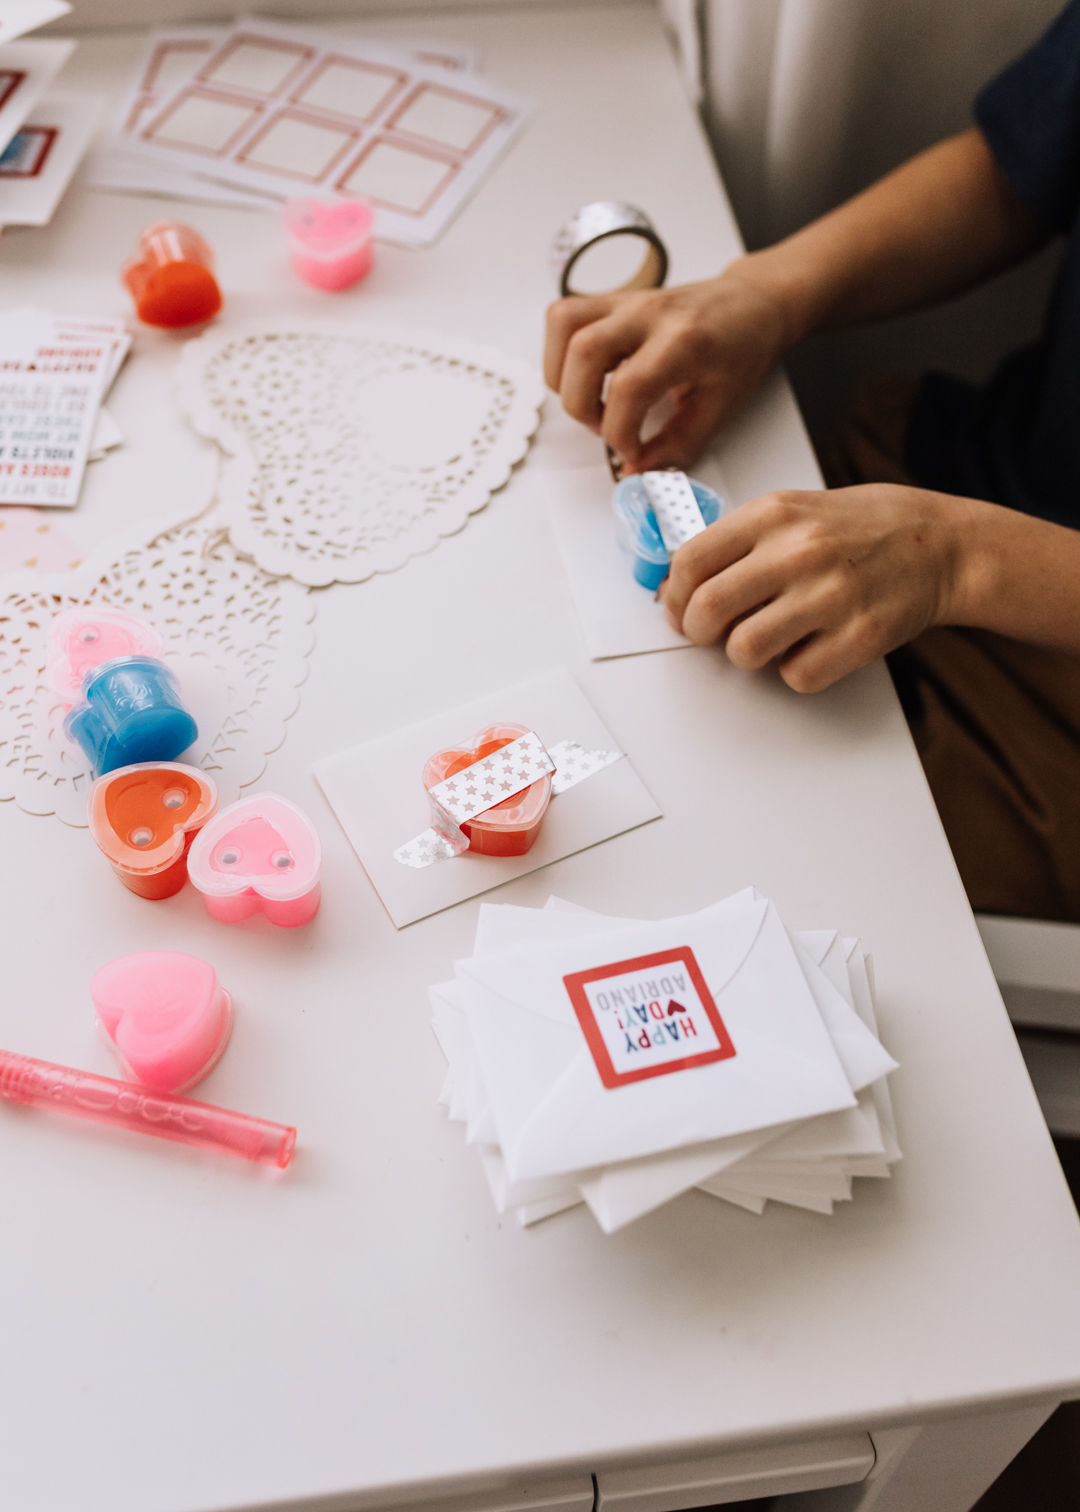 adding heart-shaped slime packages to his personalized valentines from @minted | thelovedesignedlife.com #noncandyvalentines #nosugar #valentinesday